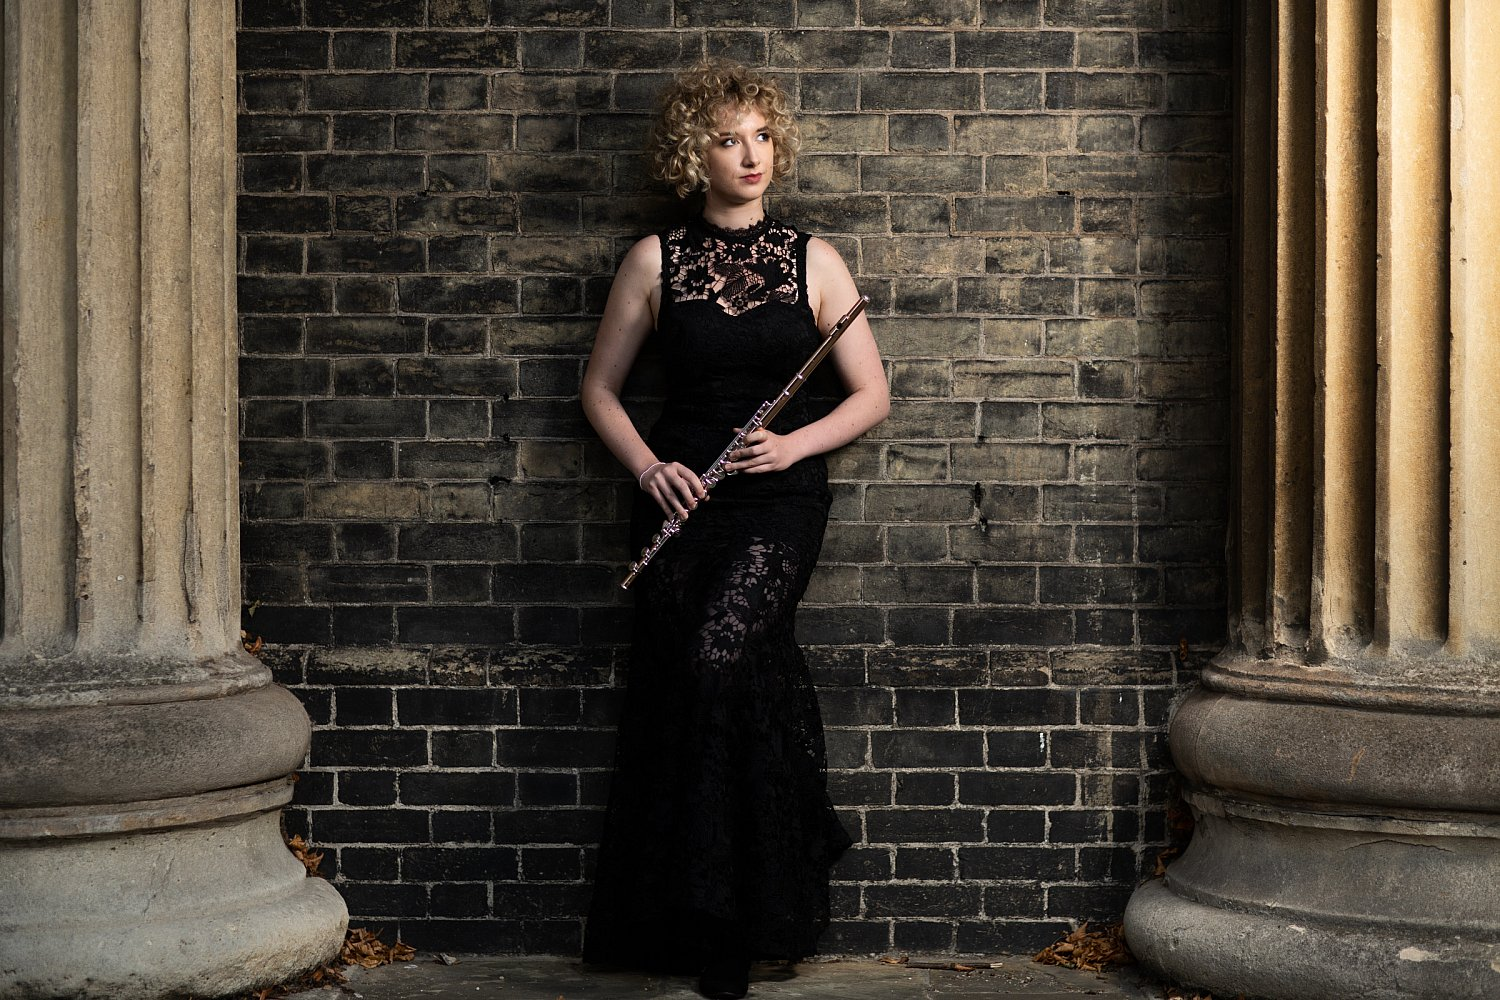 pillars-artsy-shot-black-bricks-church-flute-black-lace-concert-dress-woman-musician-mat-smith-photography.jpg